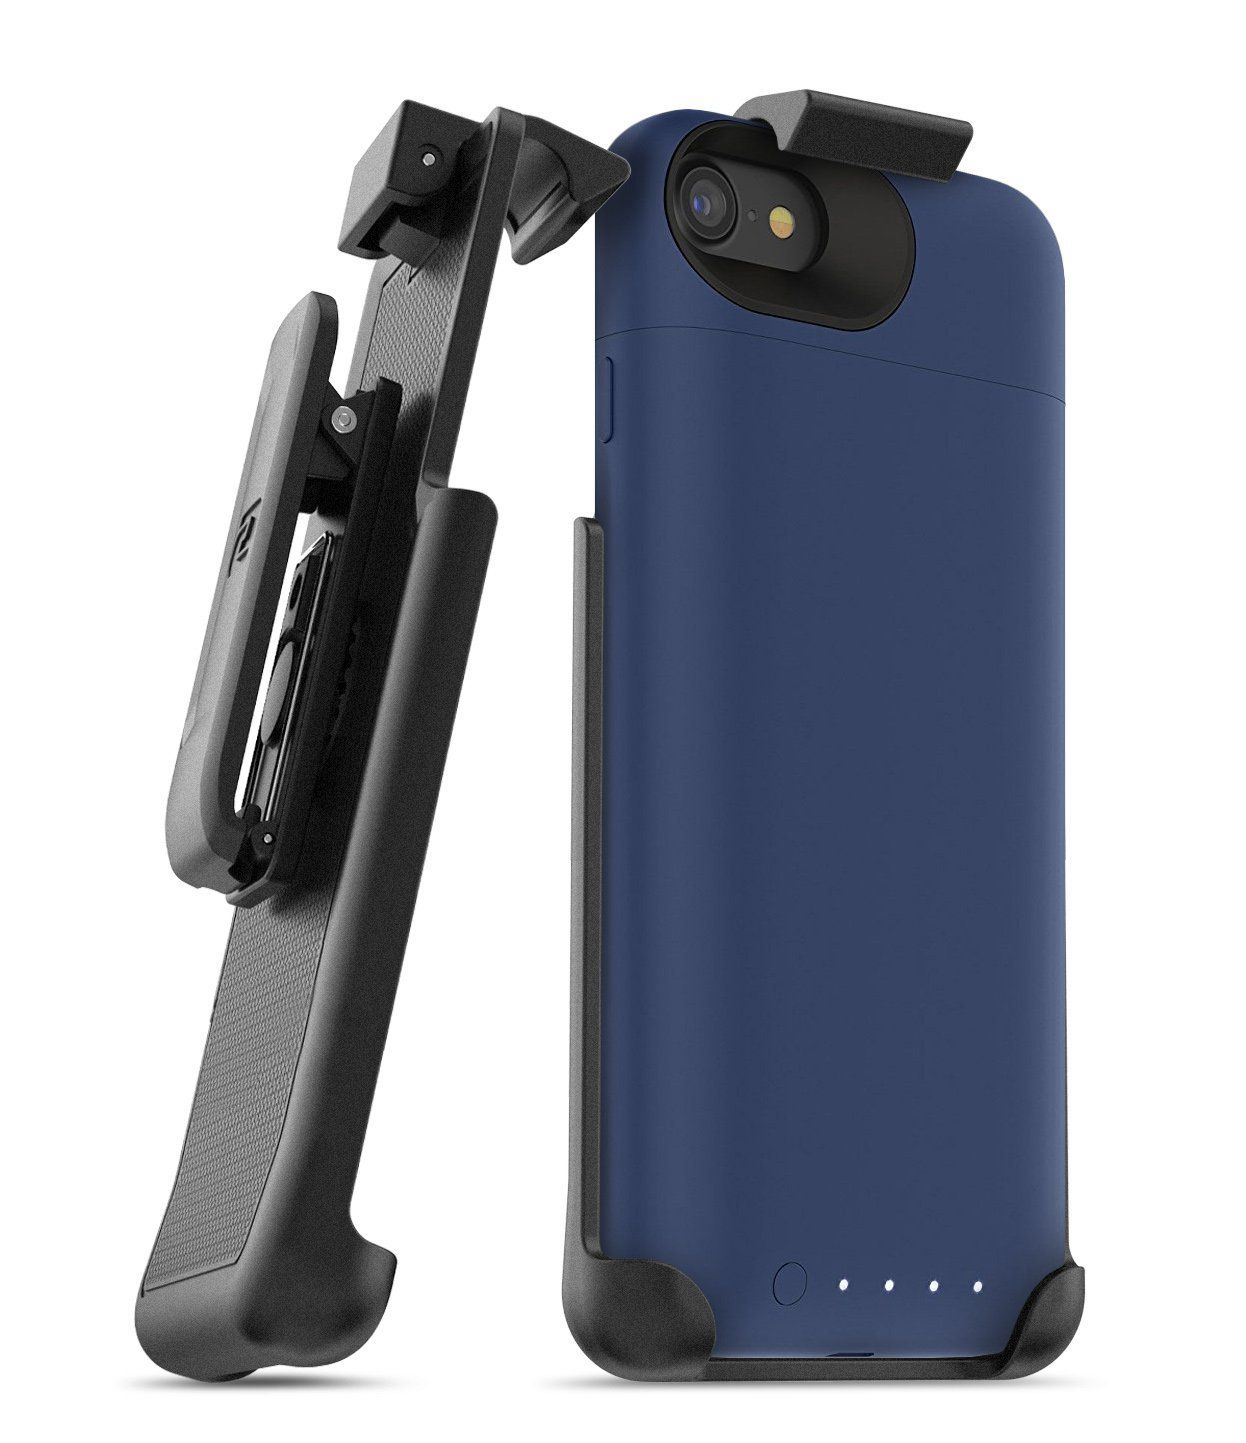 iphone 7 charging case mophie